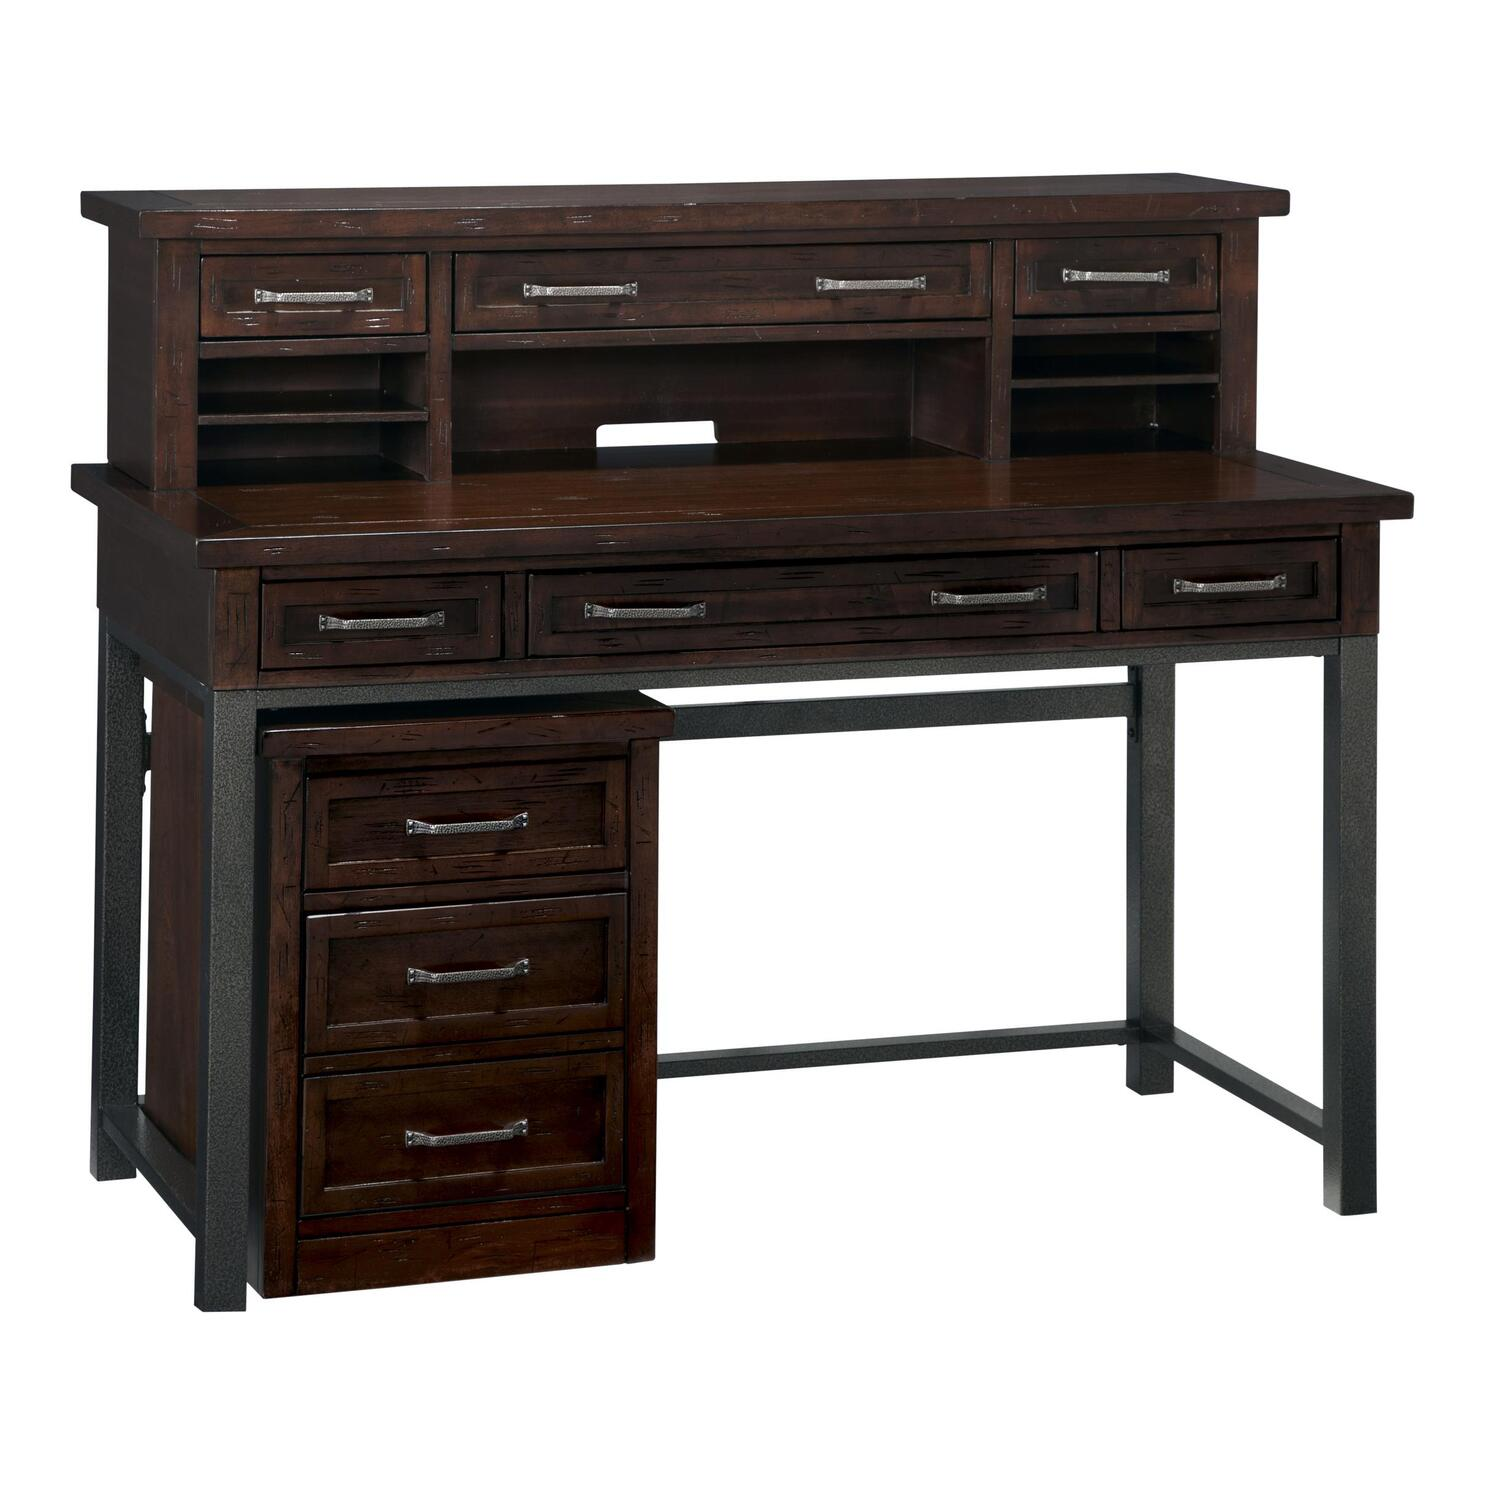 shaped executive desks cherry with wood workstation desk hutch computer small office l white sale black contemporary for